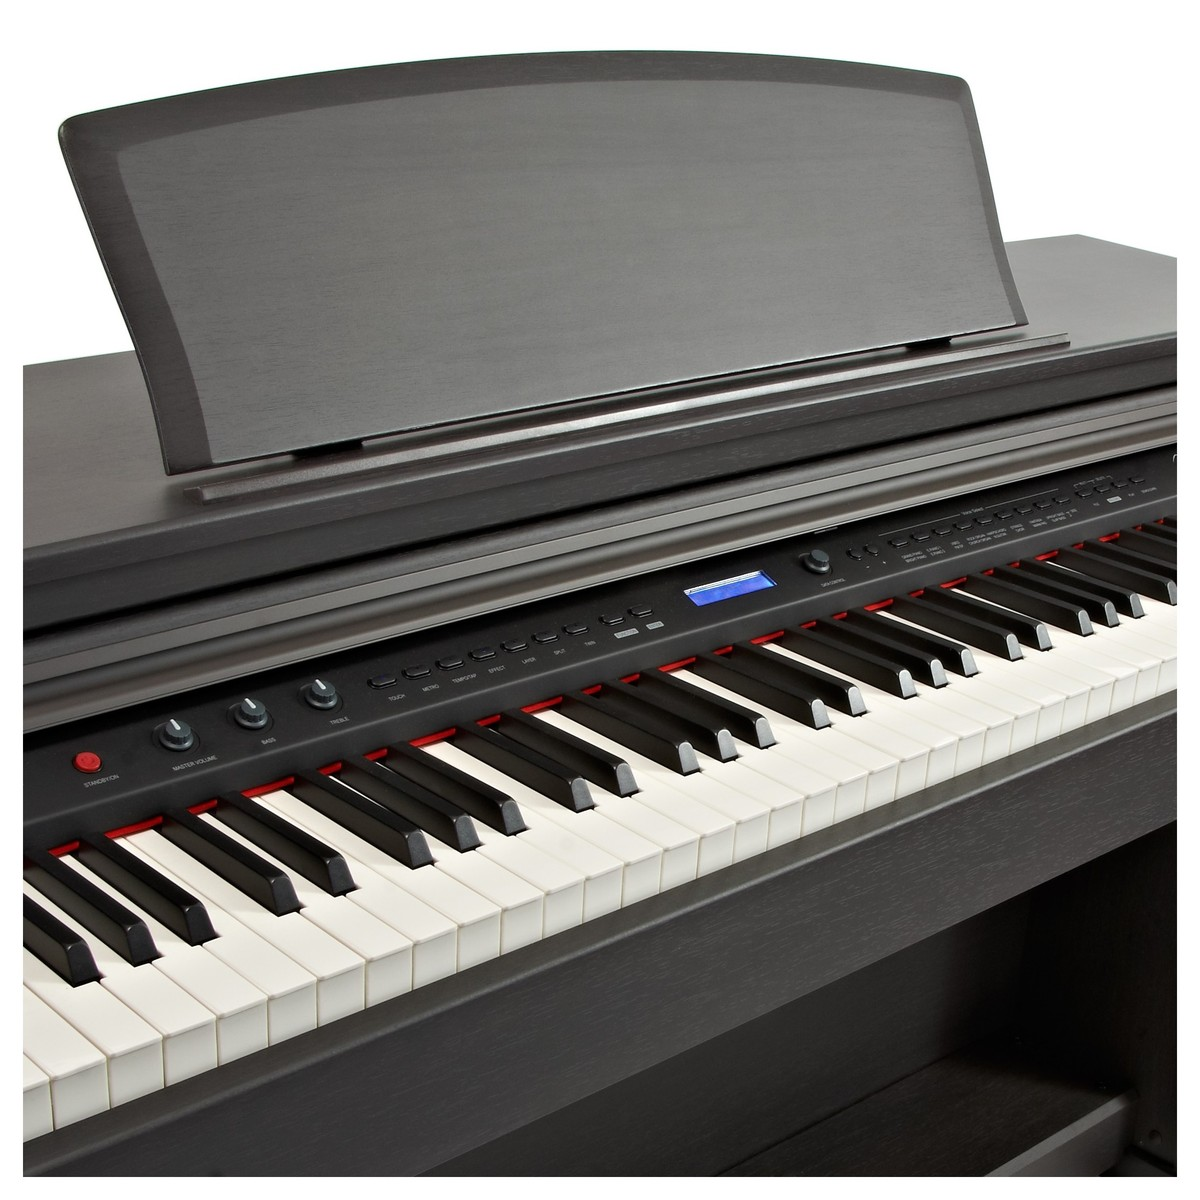 Piano Digital Dp 20 De Gear4music Seminuevo Gear4music